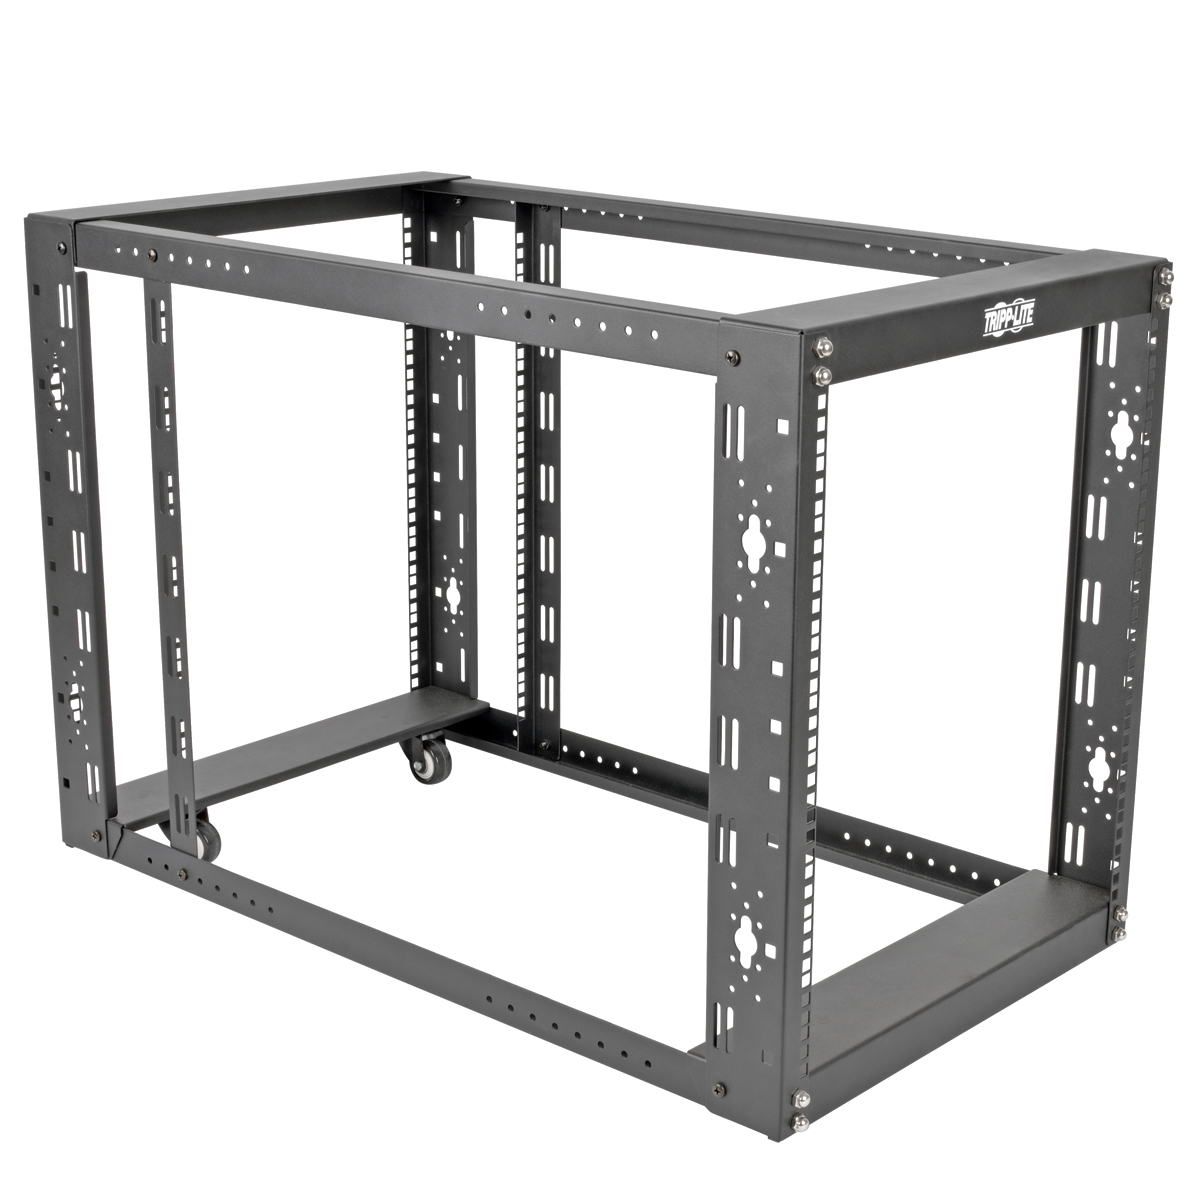 Tripp Lite SmartRack 12U 4-Post Floor-standing Open Frame Rack ...